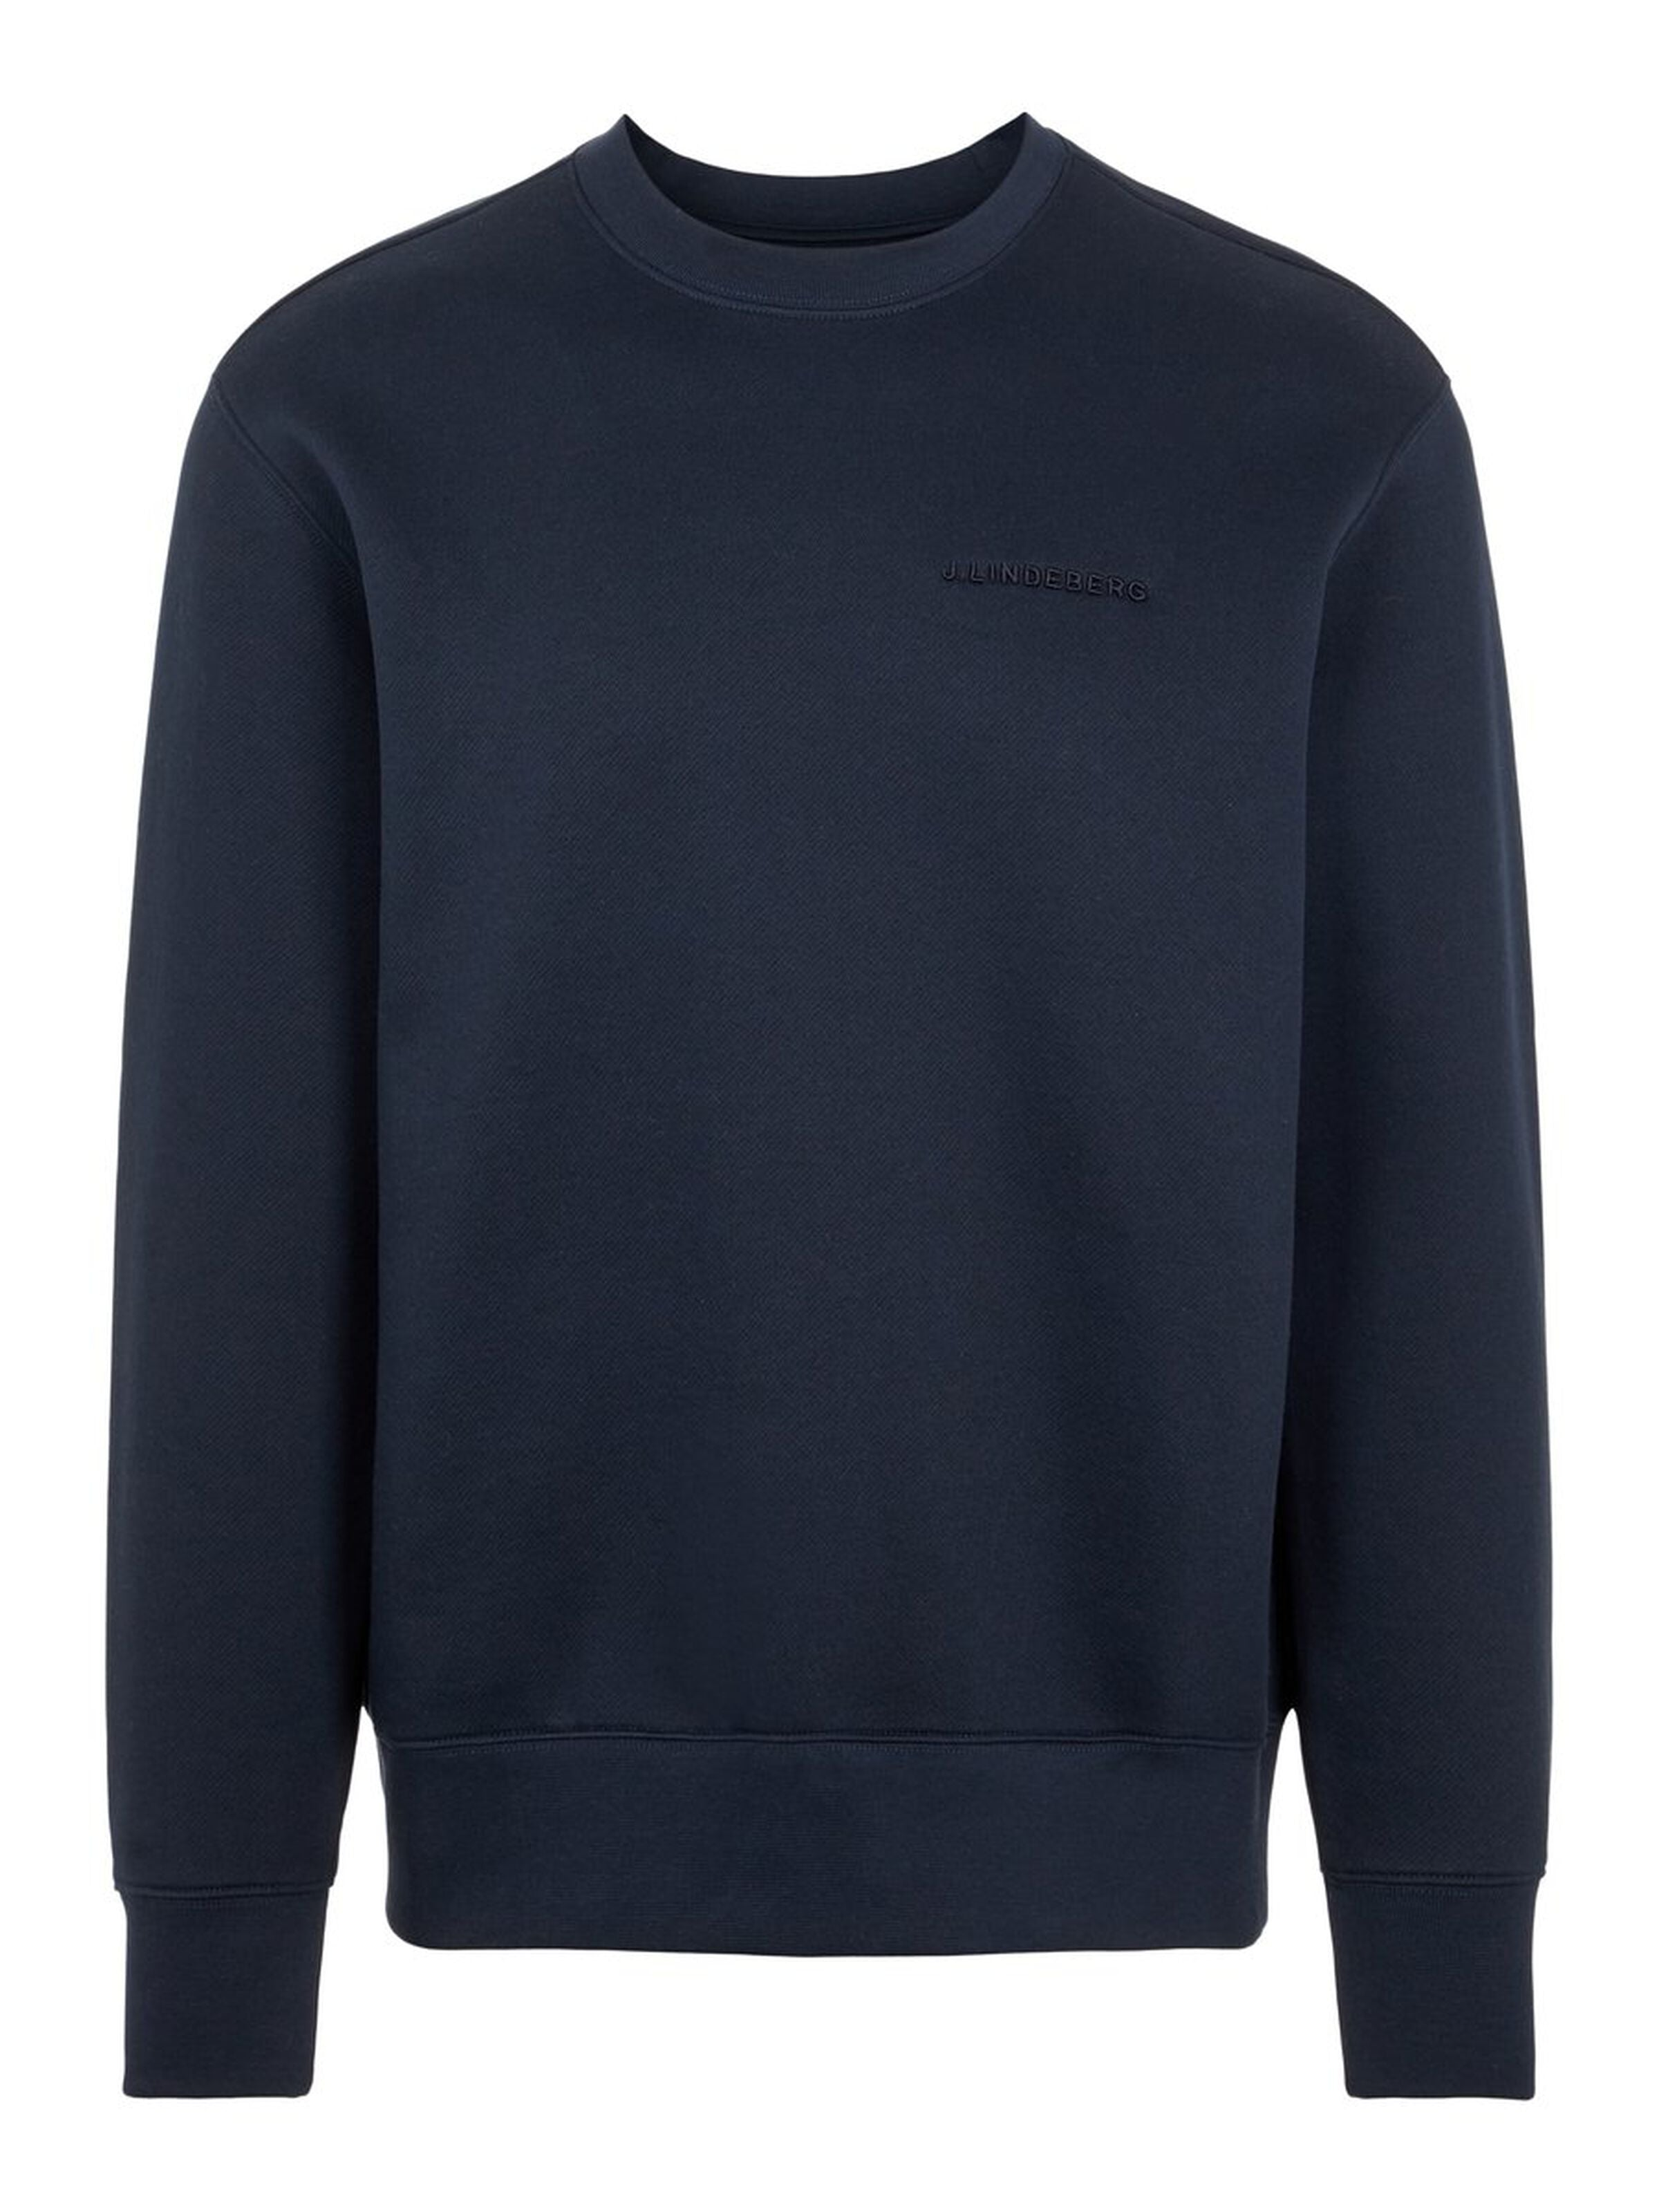 Chip Navy Crew Neck Sweatshirt